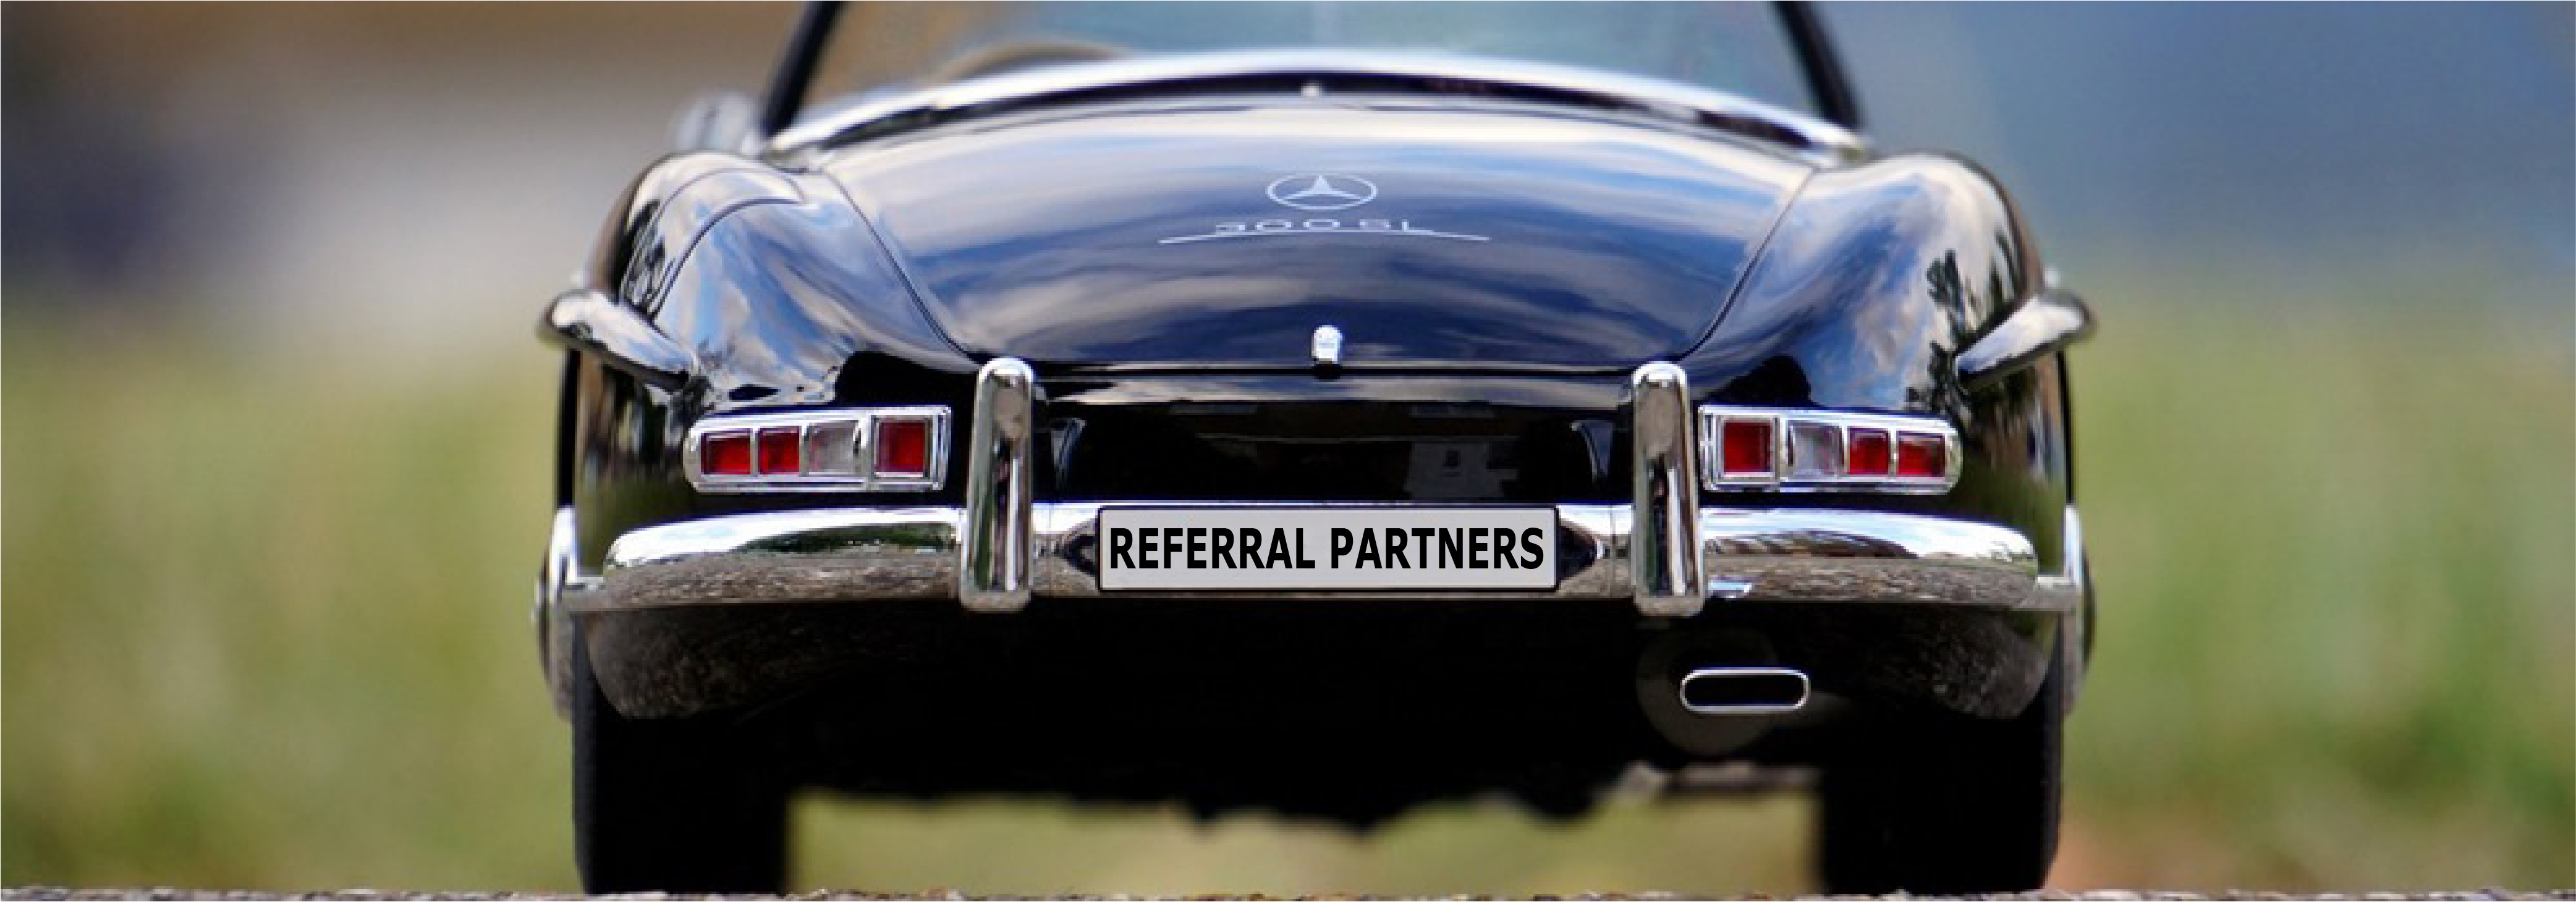 Why referral partners are more engaged than reseller